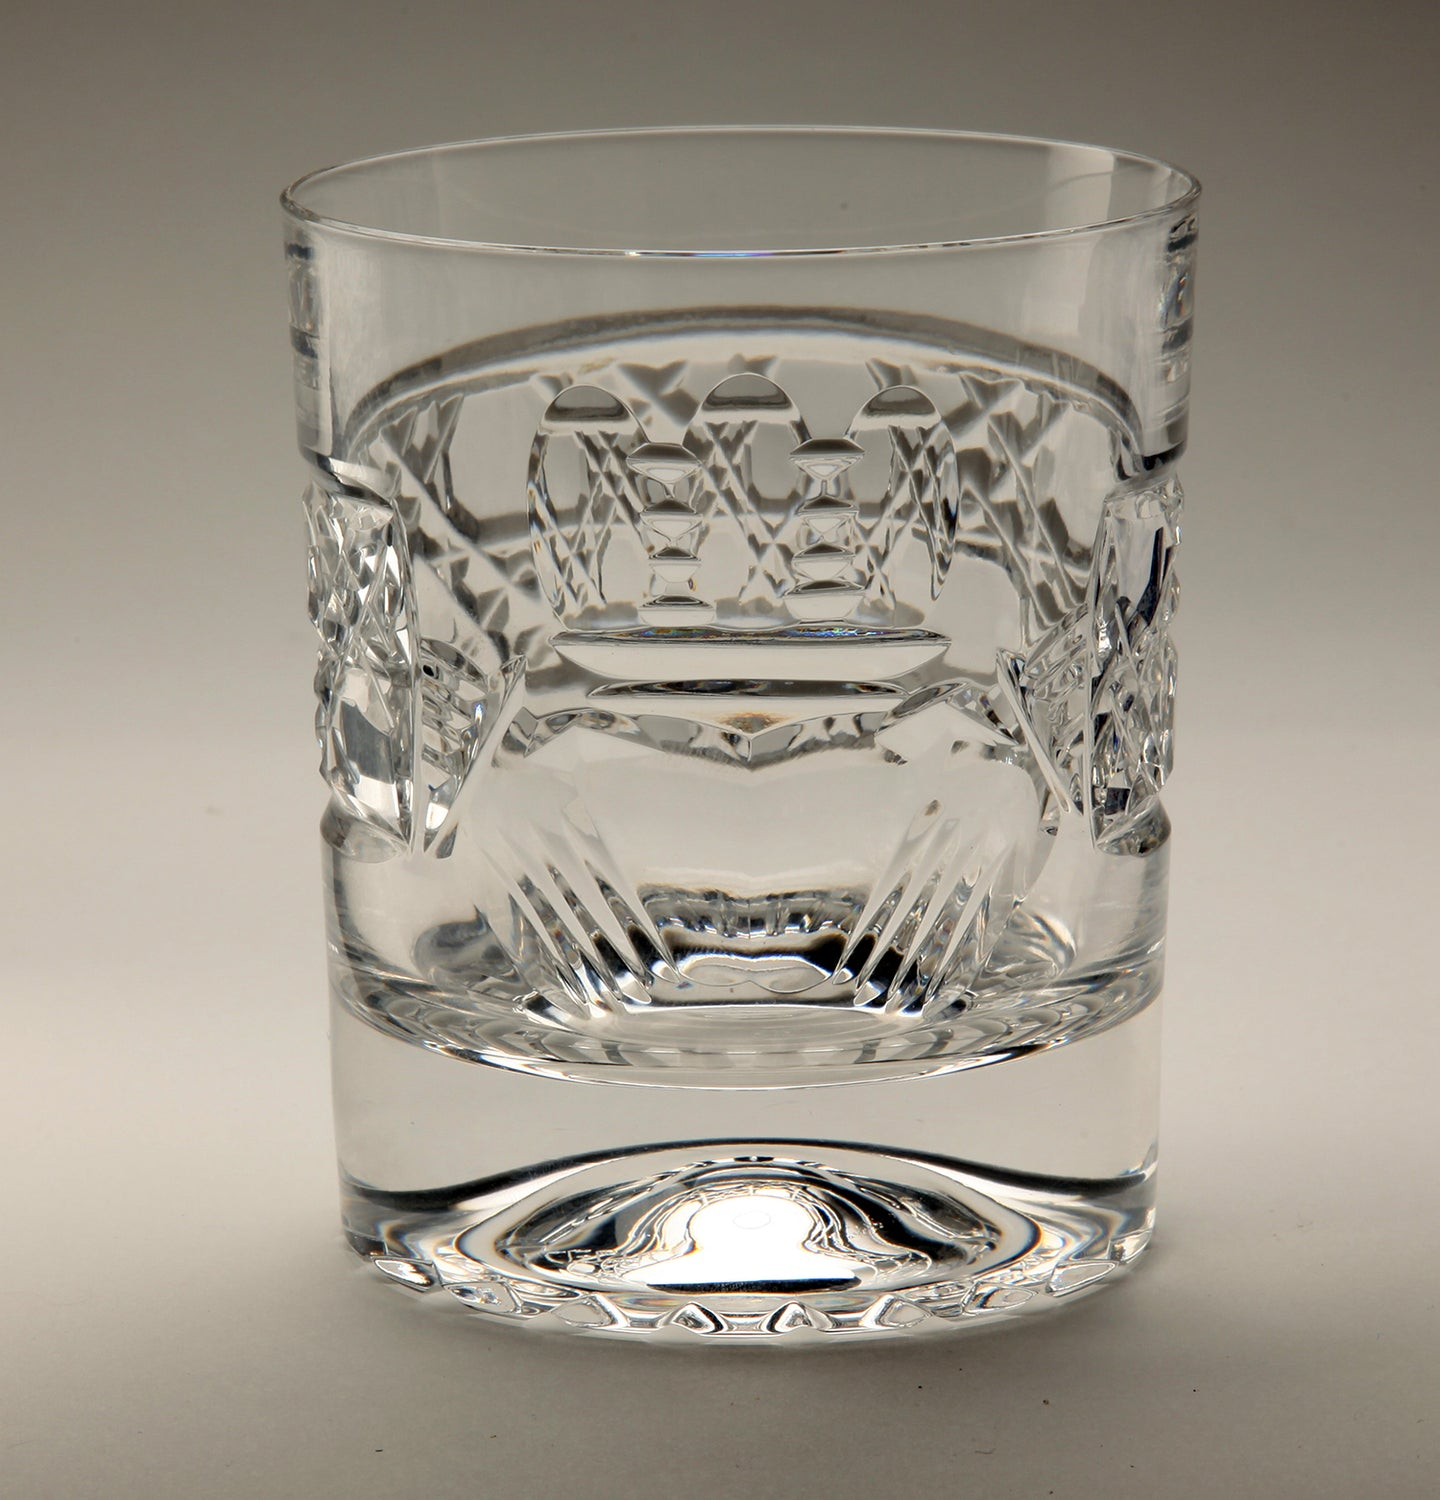 Claddagh 'Old Fashioned' Crystal Whiskey Tumbler